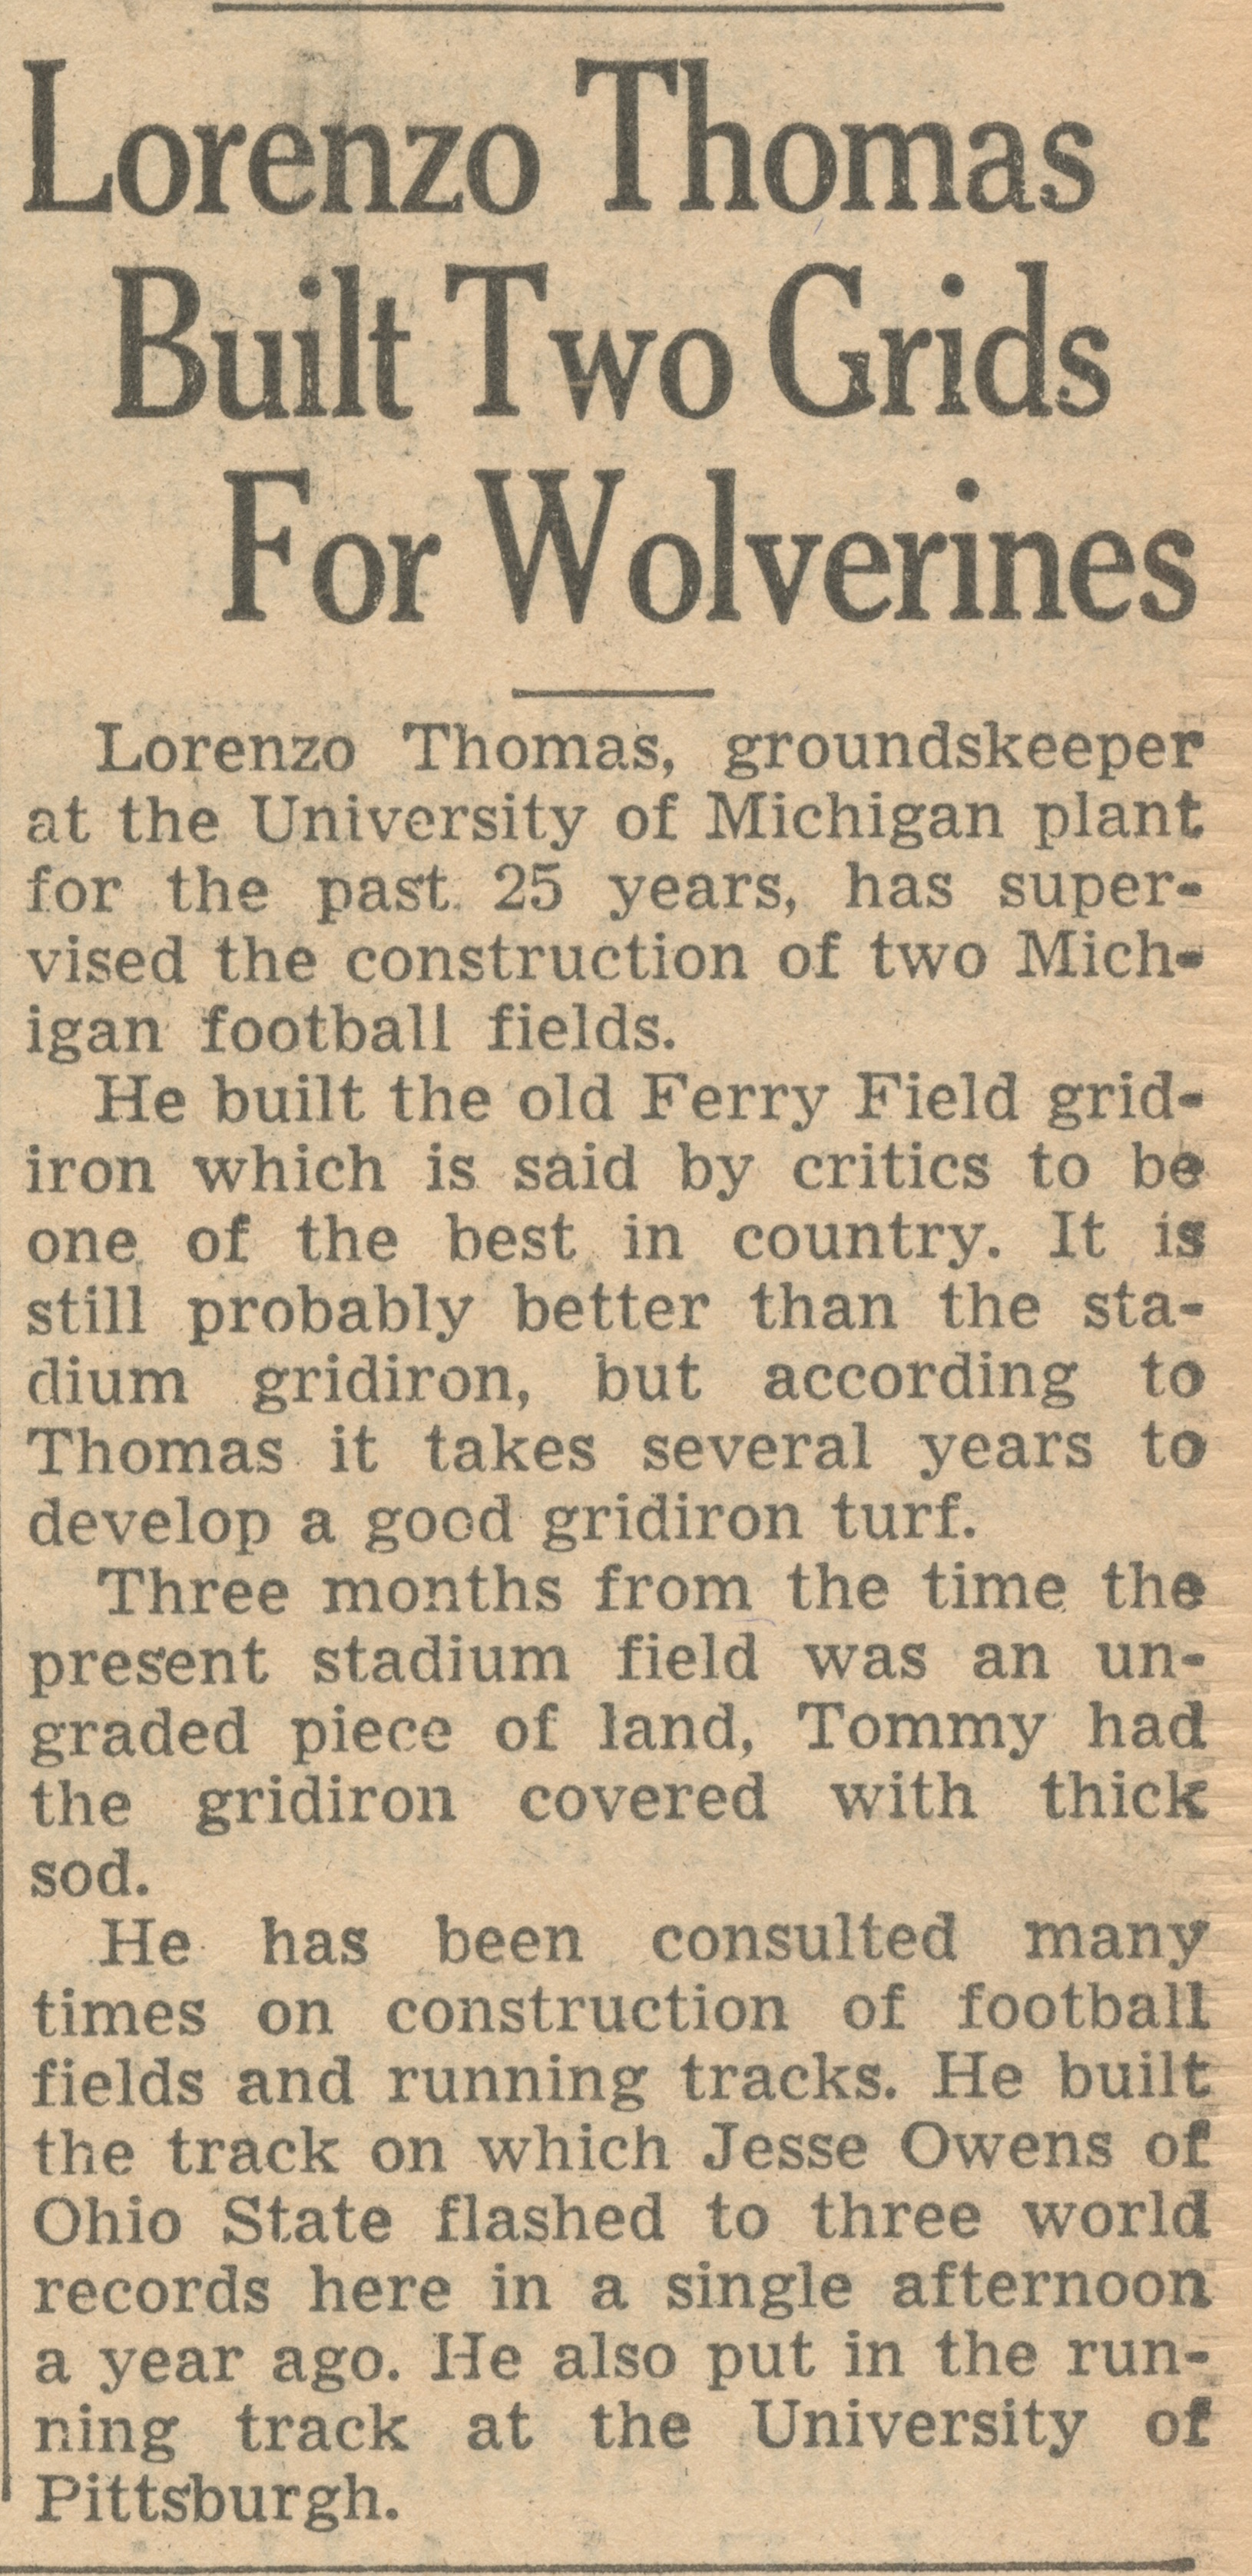 Lorenzo Thomas Built Two Grids For Wolverines image